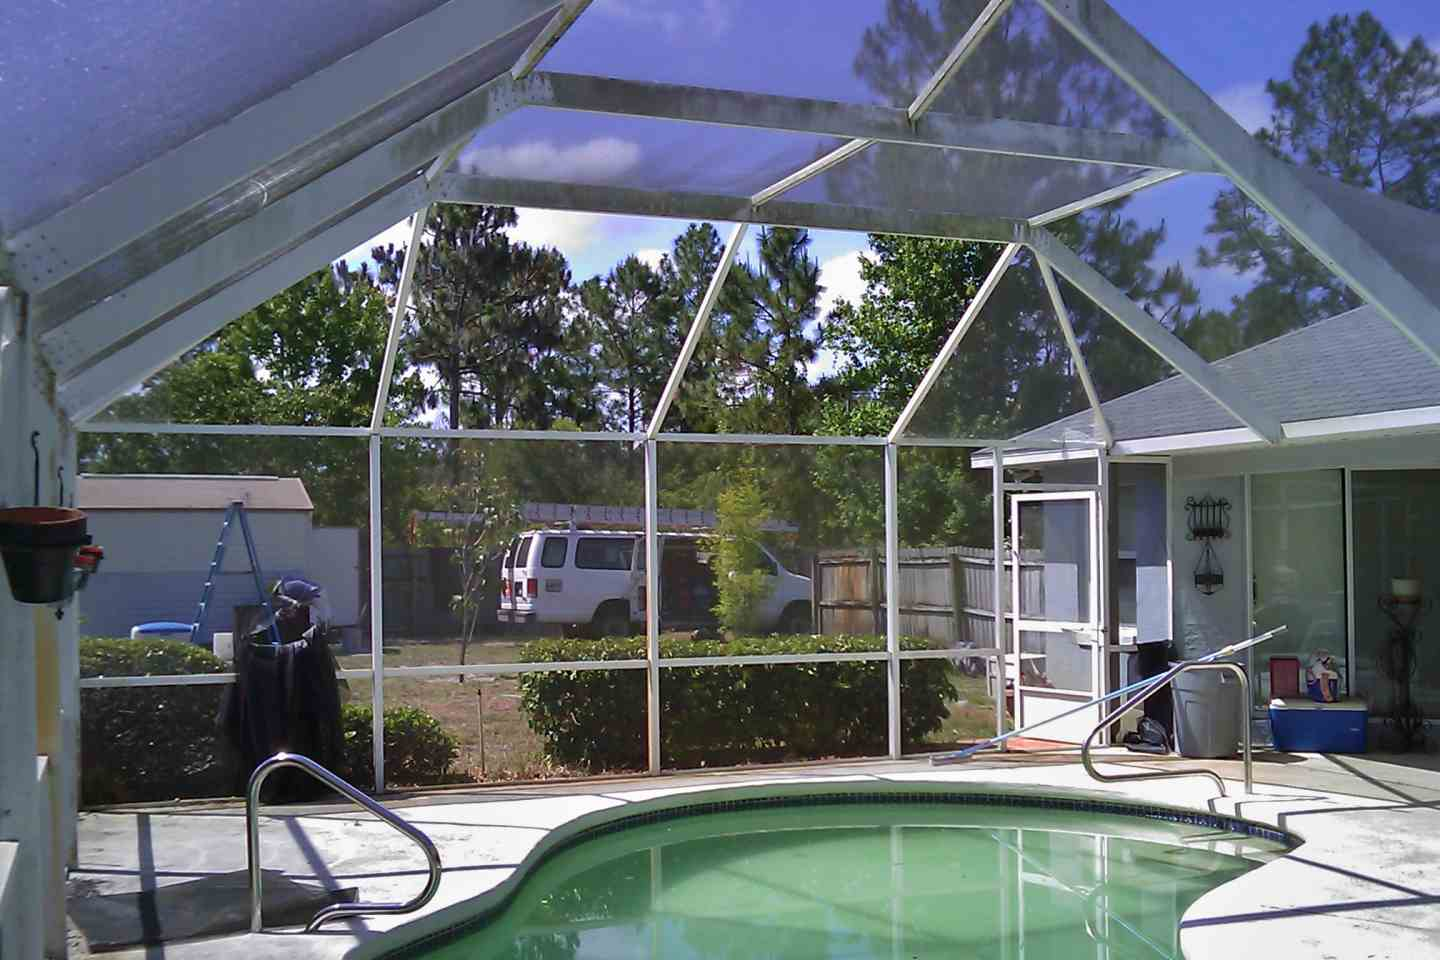 01-before-pool-enclosure-complete-re-screen.jpg